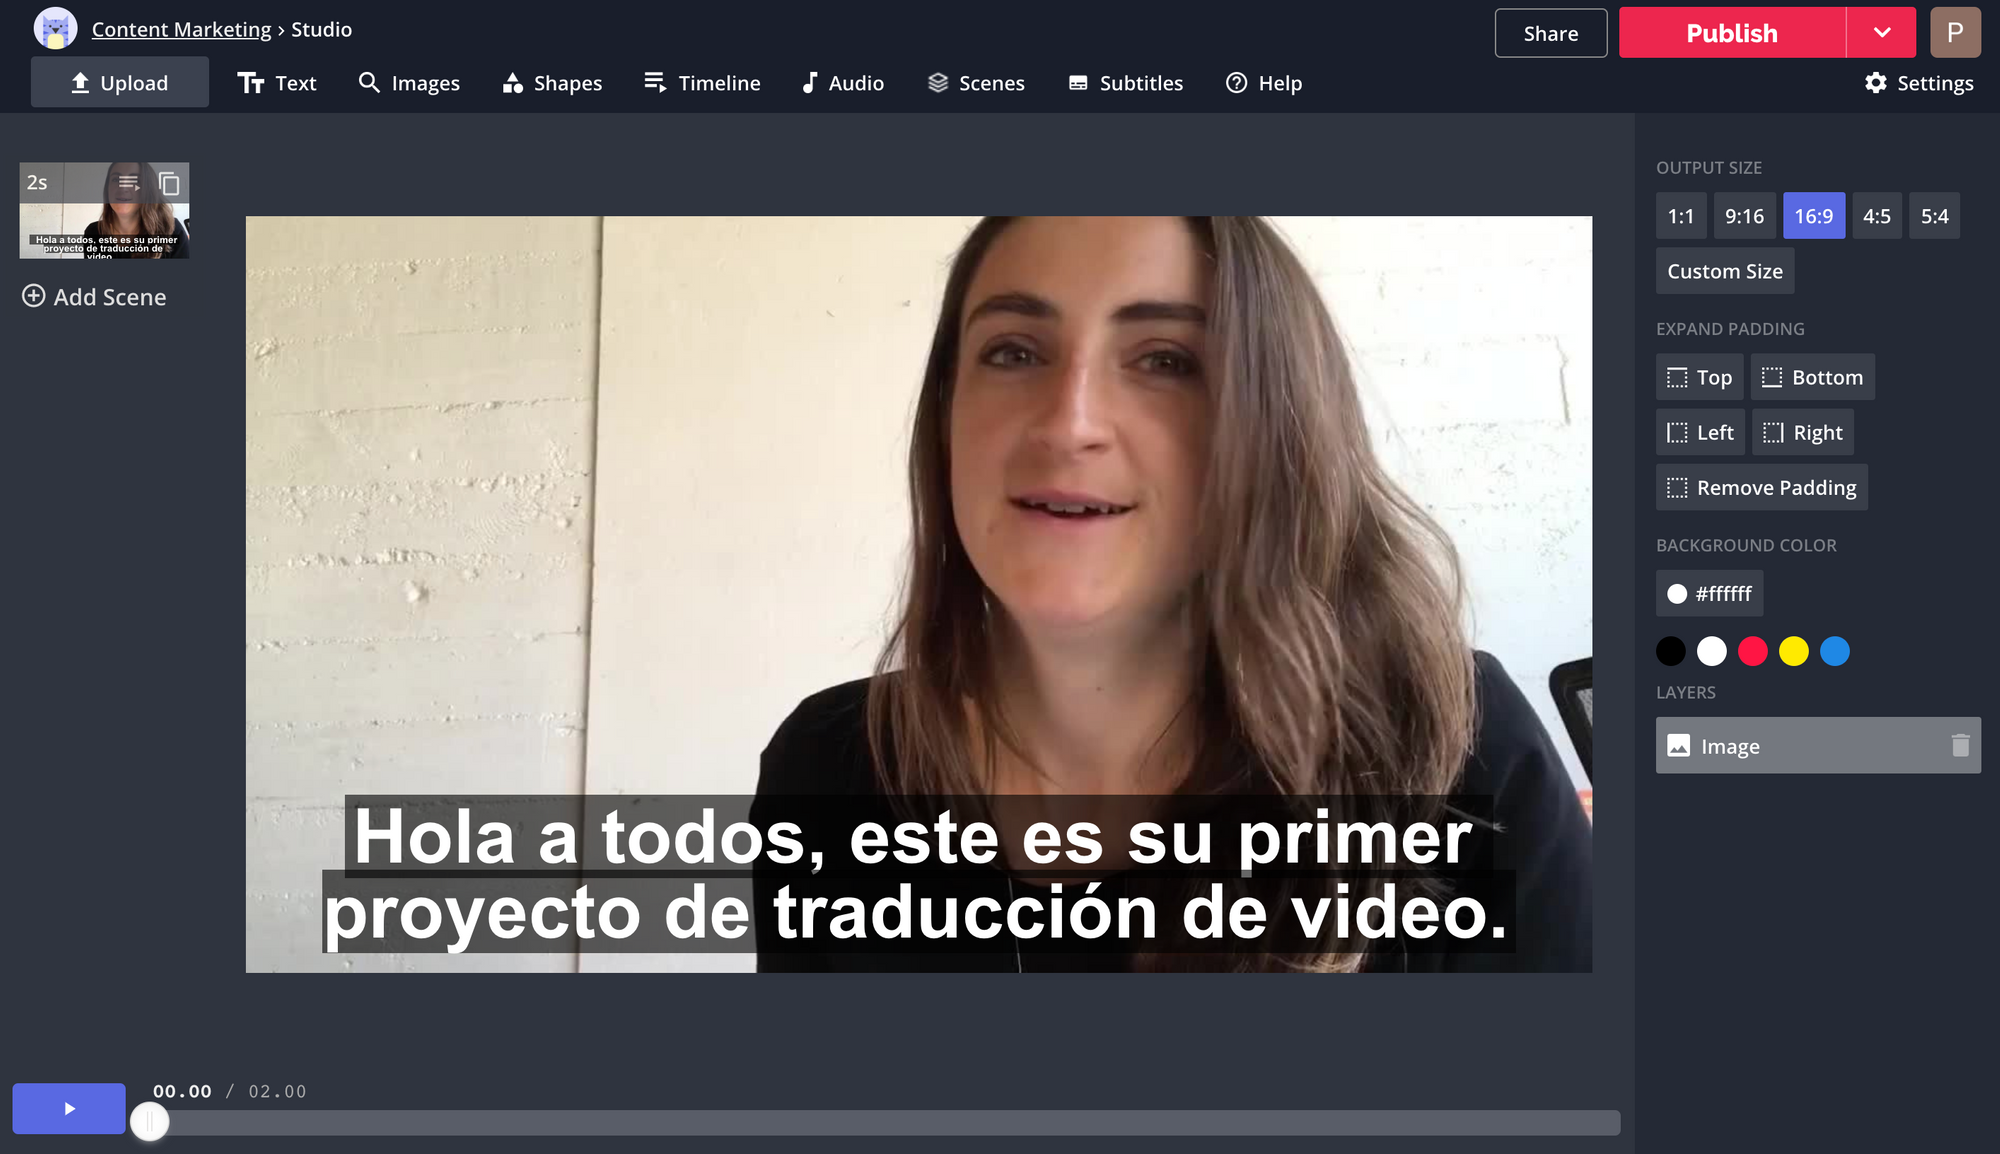 A screenshot of the Kapwing Studio, with a video subtitled in Spanish.